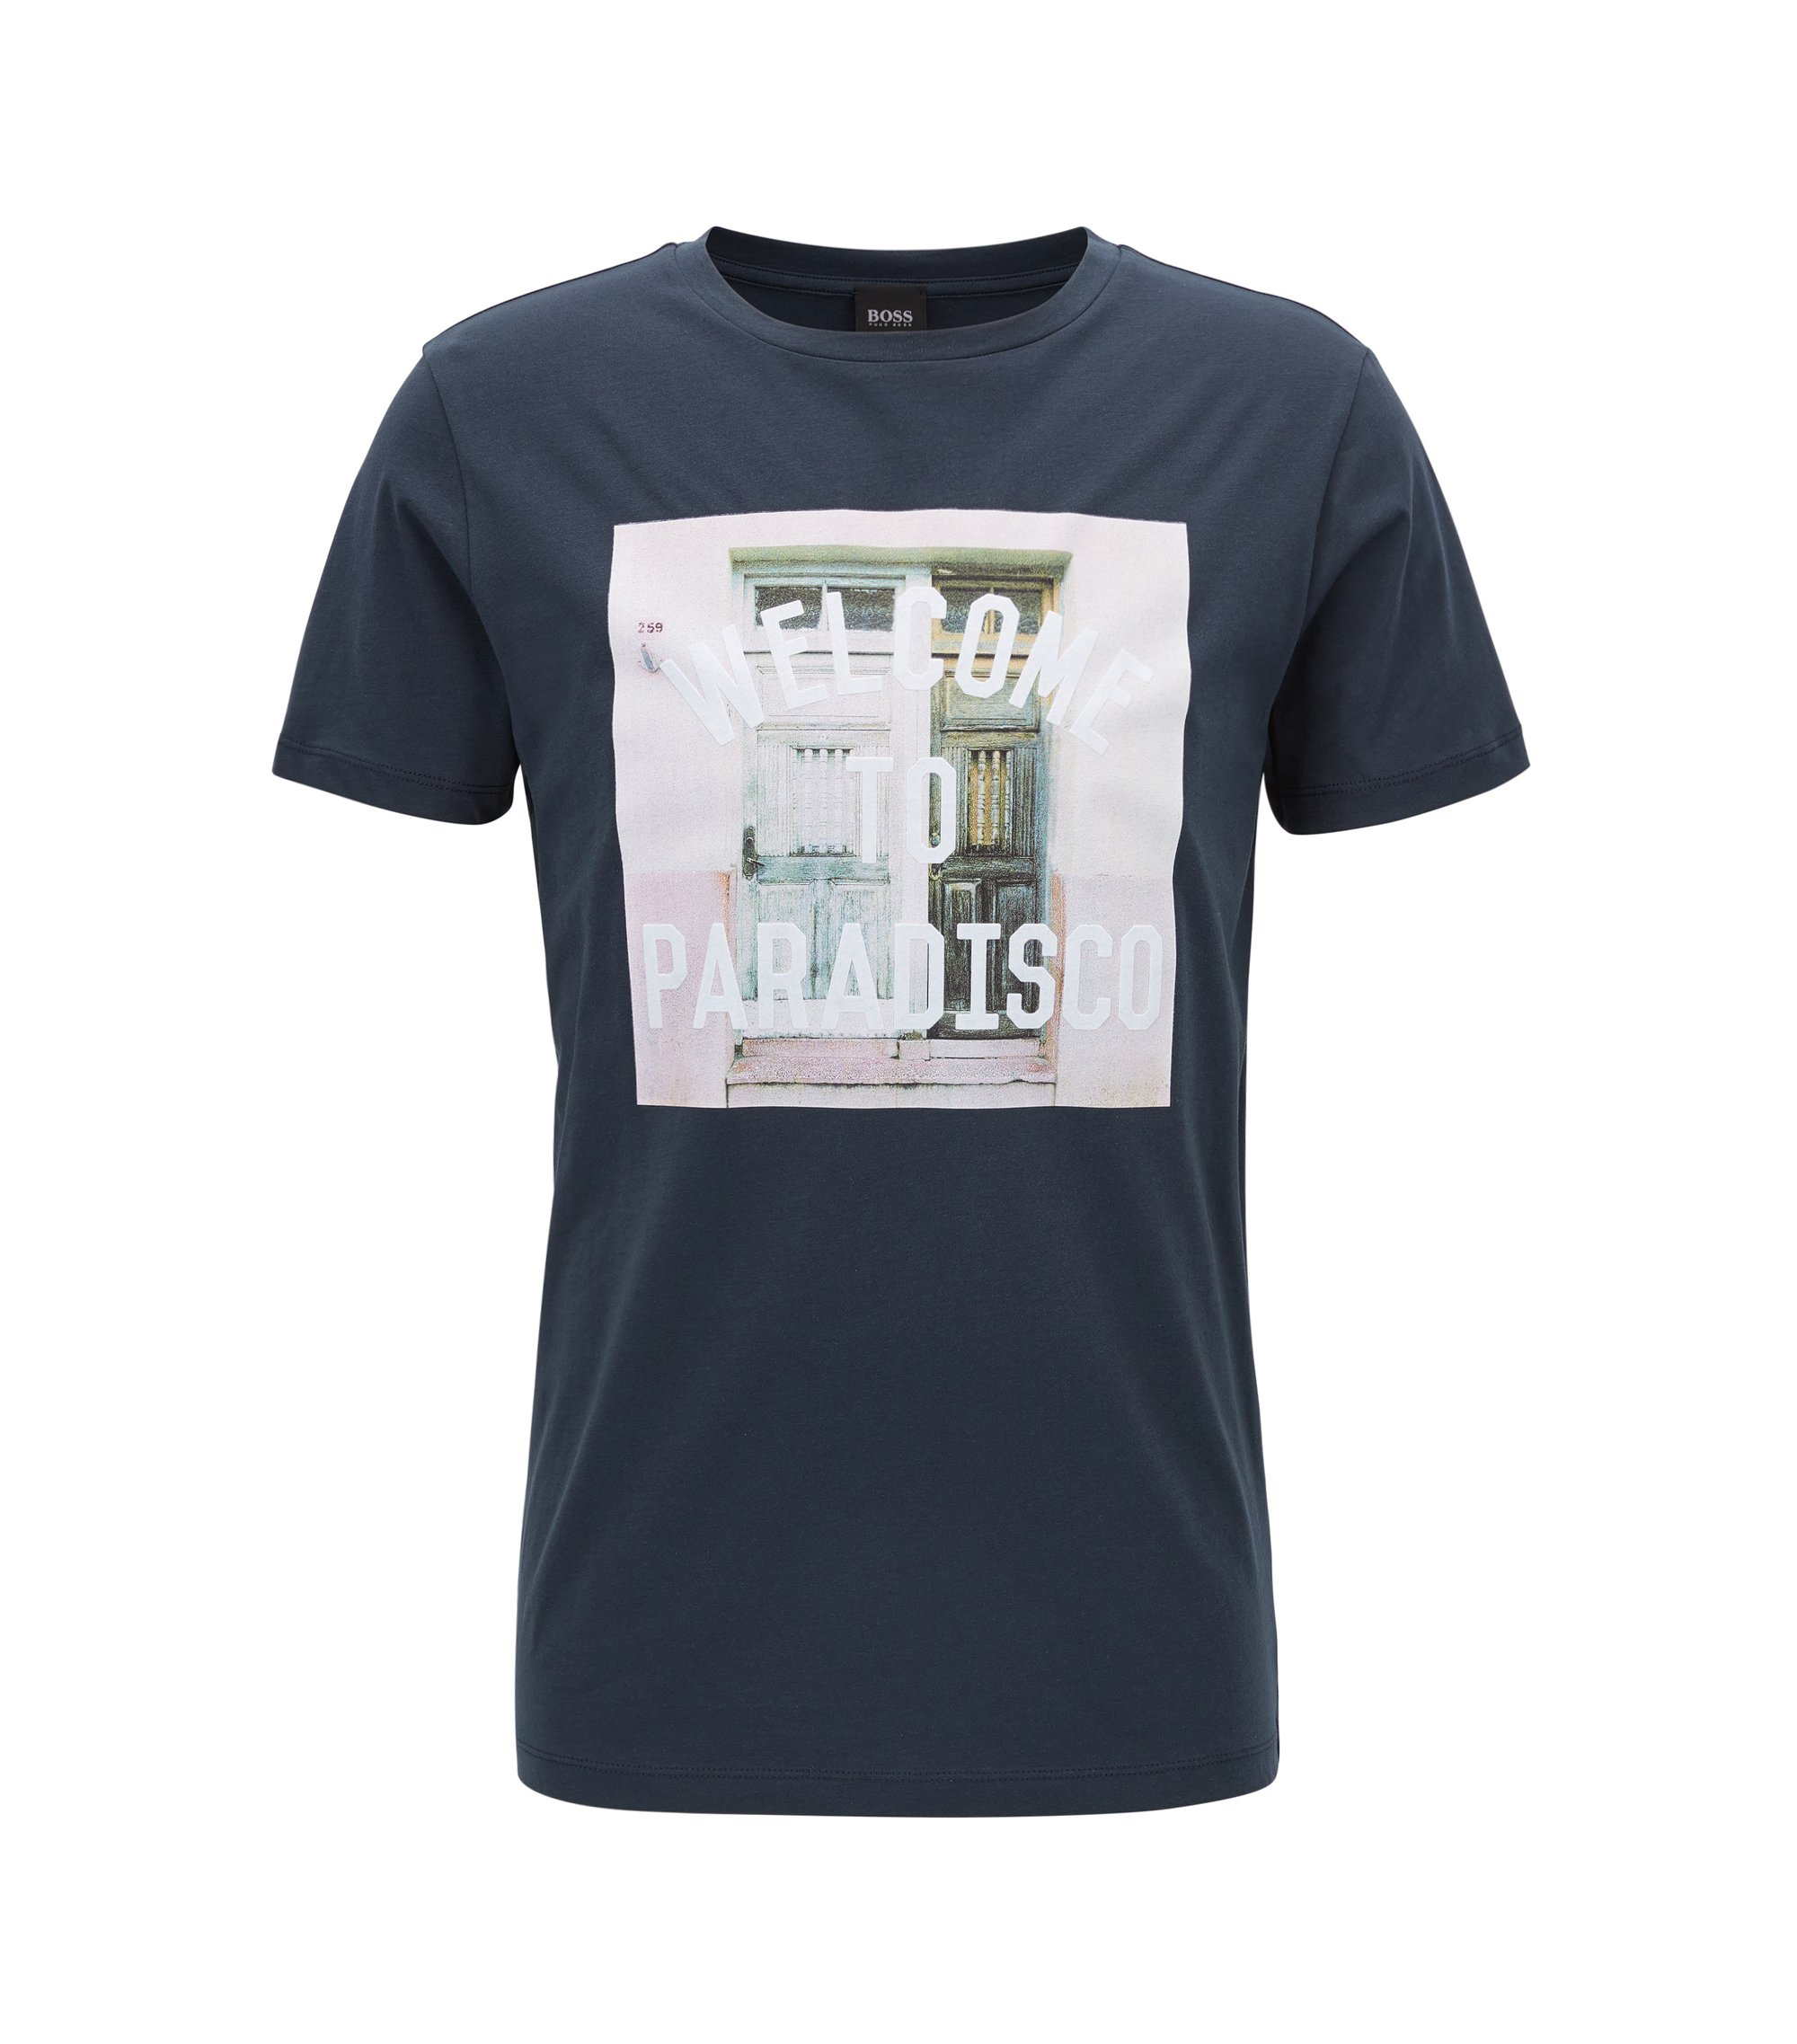 T-shirt graphique Relaxed Fit en jersey simple de coton, Bleu foncé